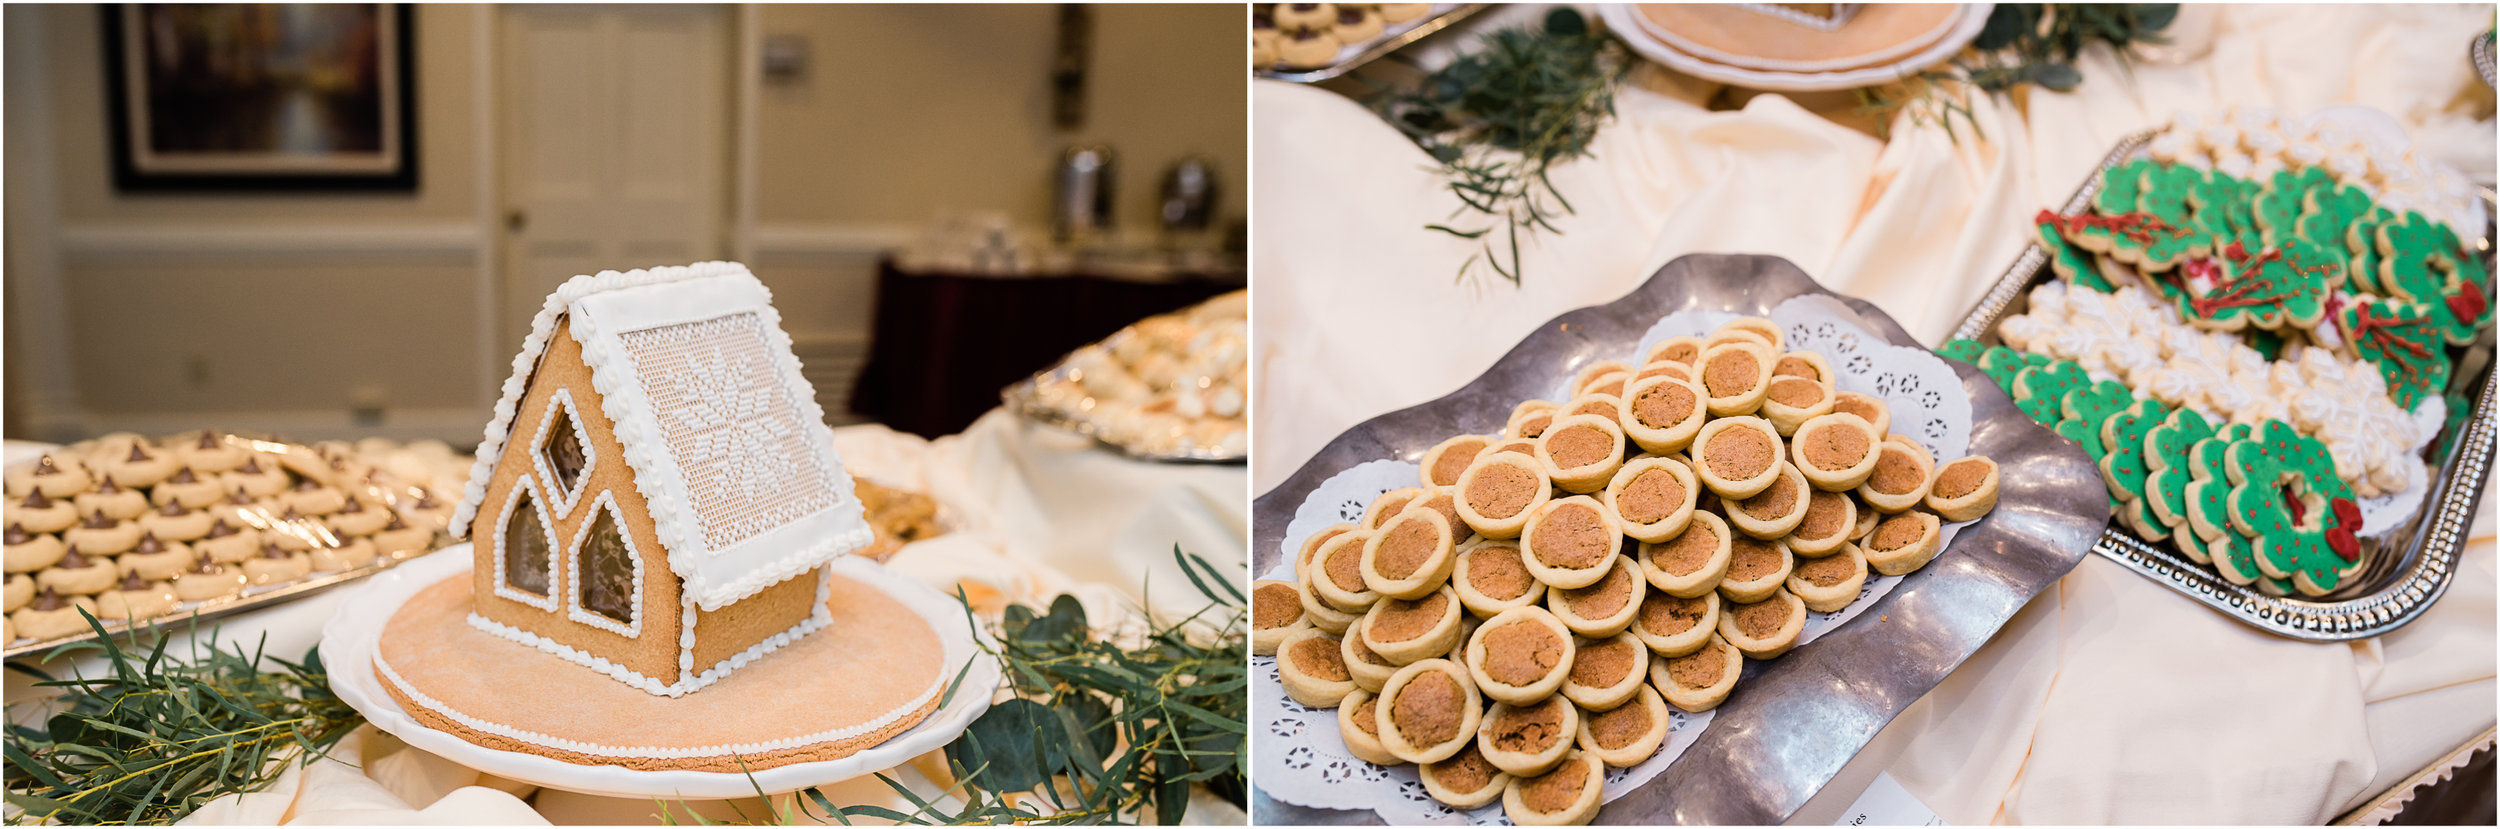 sunnehanna country club wedding, cookie table.jpg